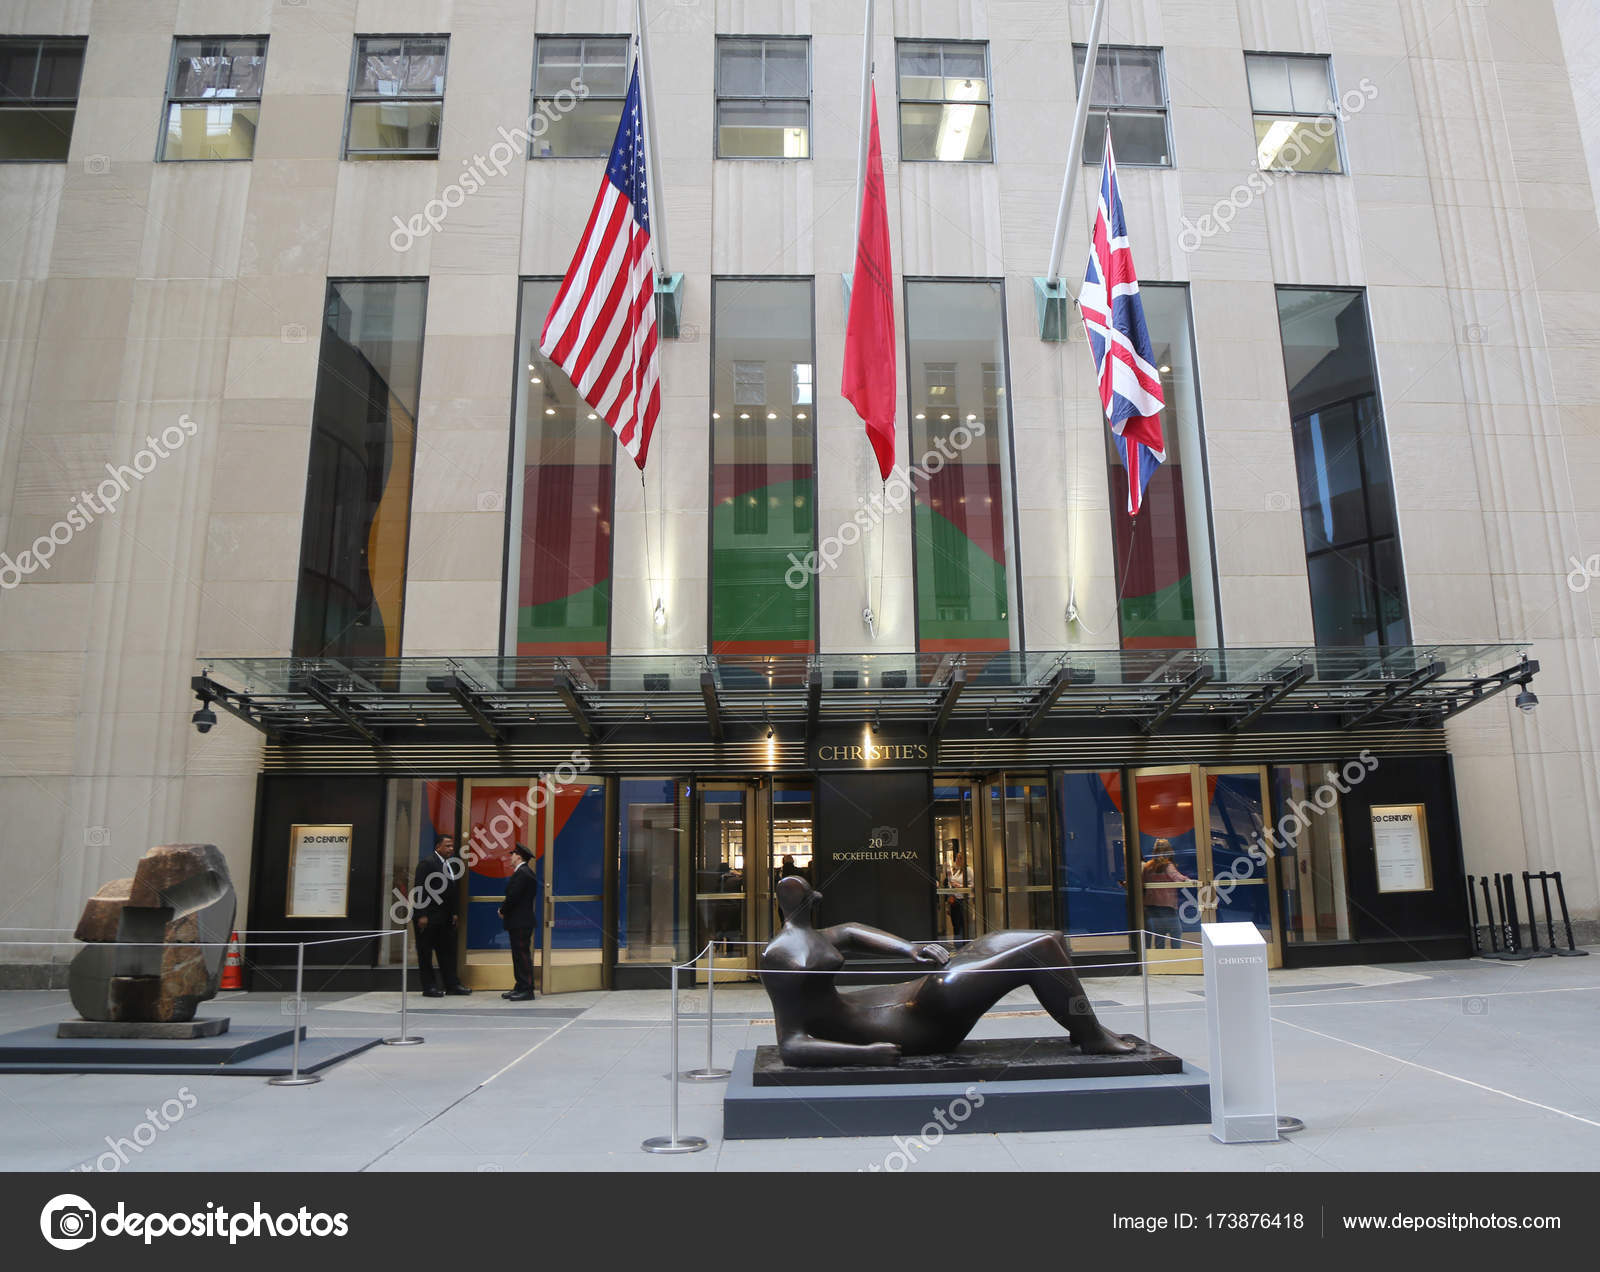 Christies Main Headquarters At Rockefeller Plaza In New York Stock Photo